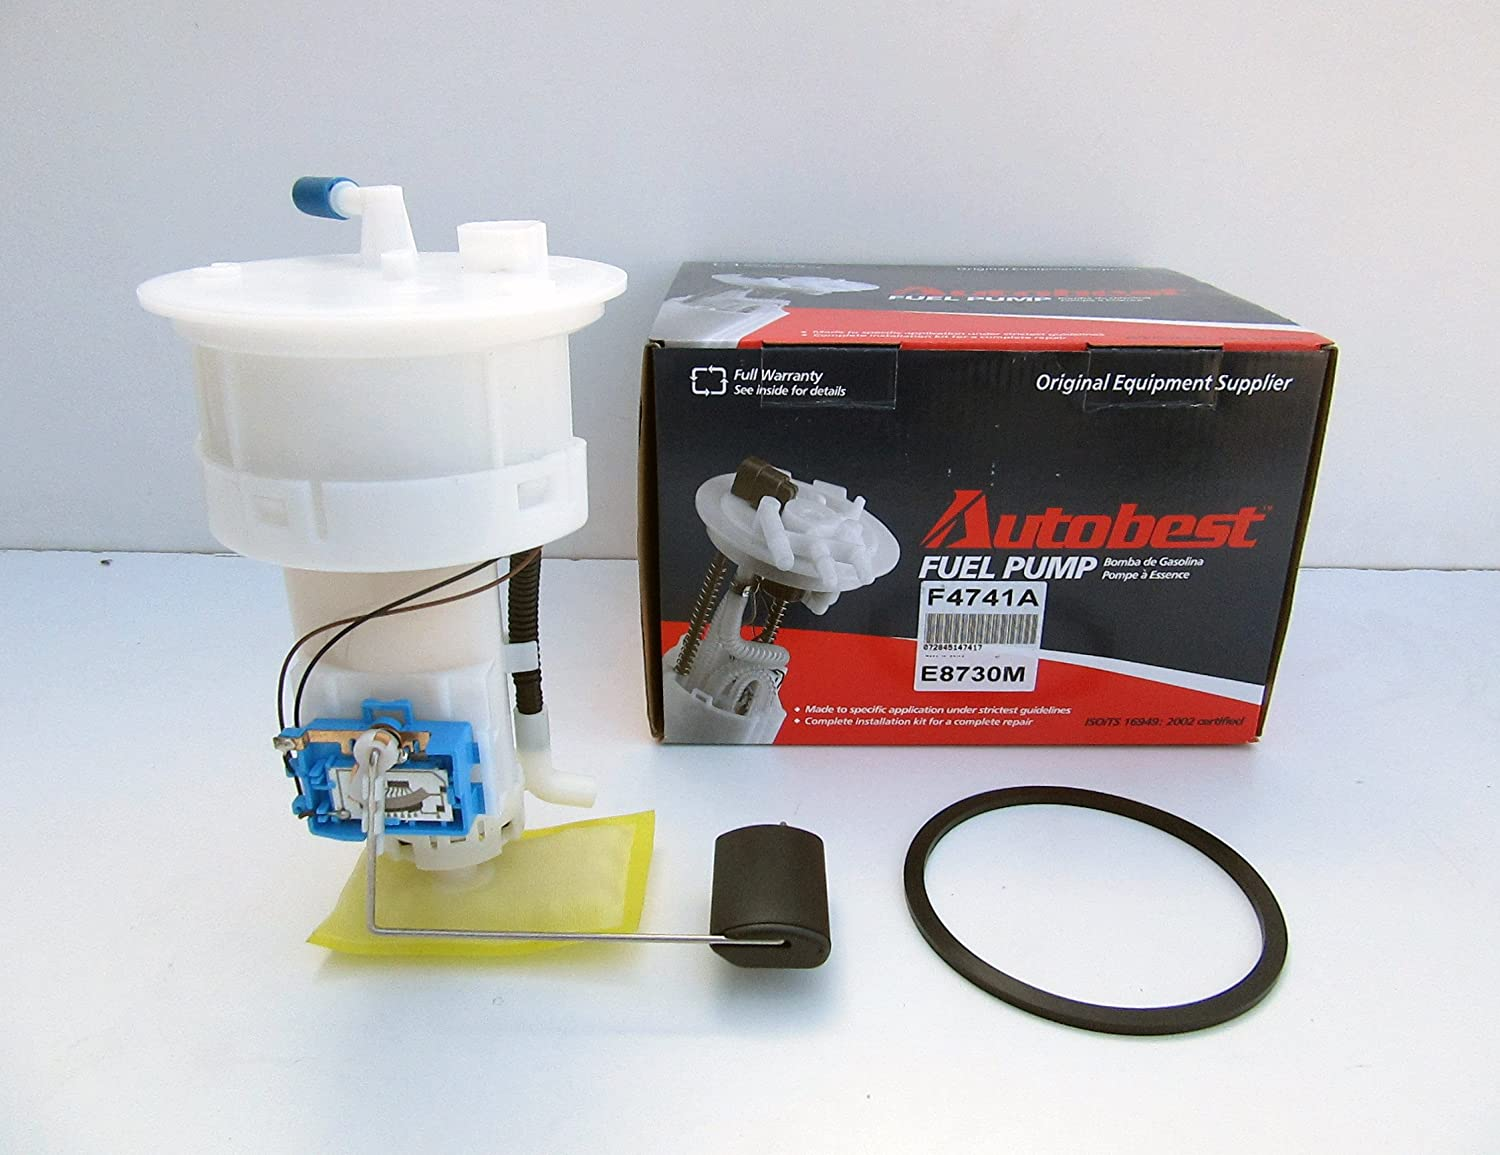 Autobest F4741A Fuel Pump Module Assembly